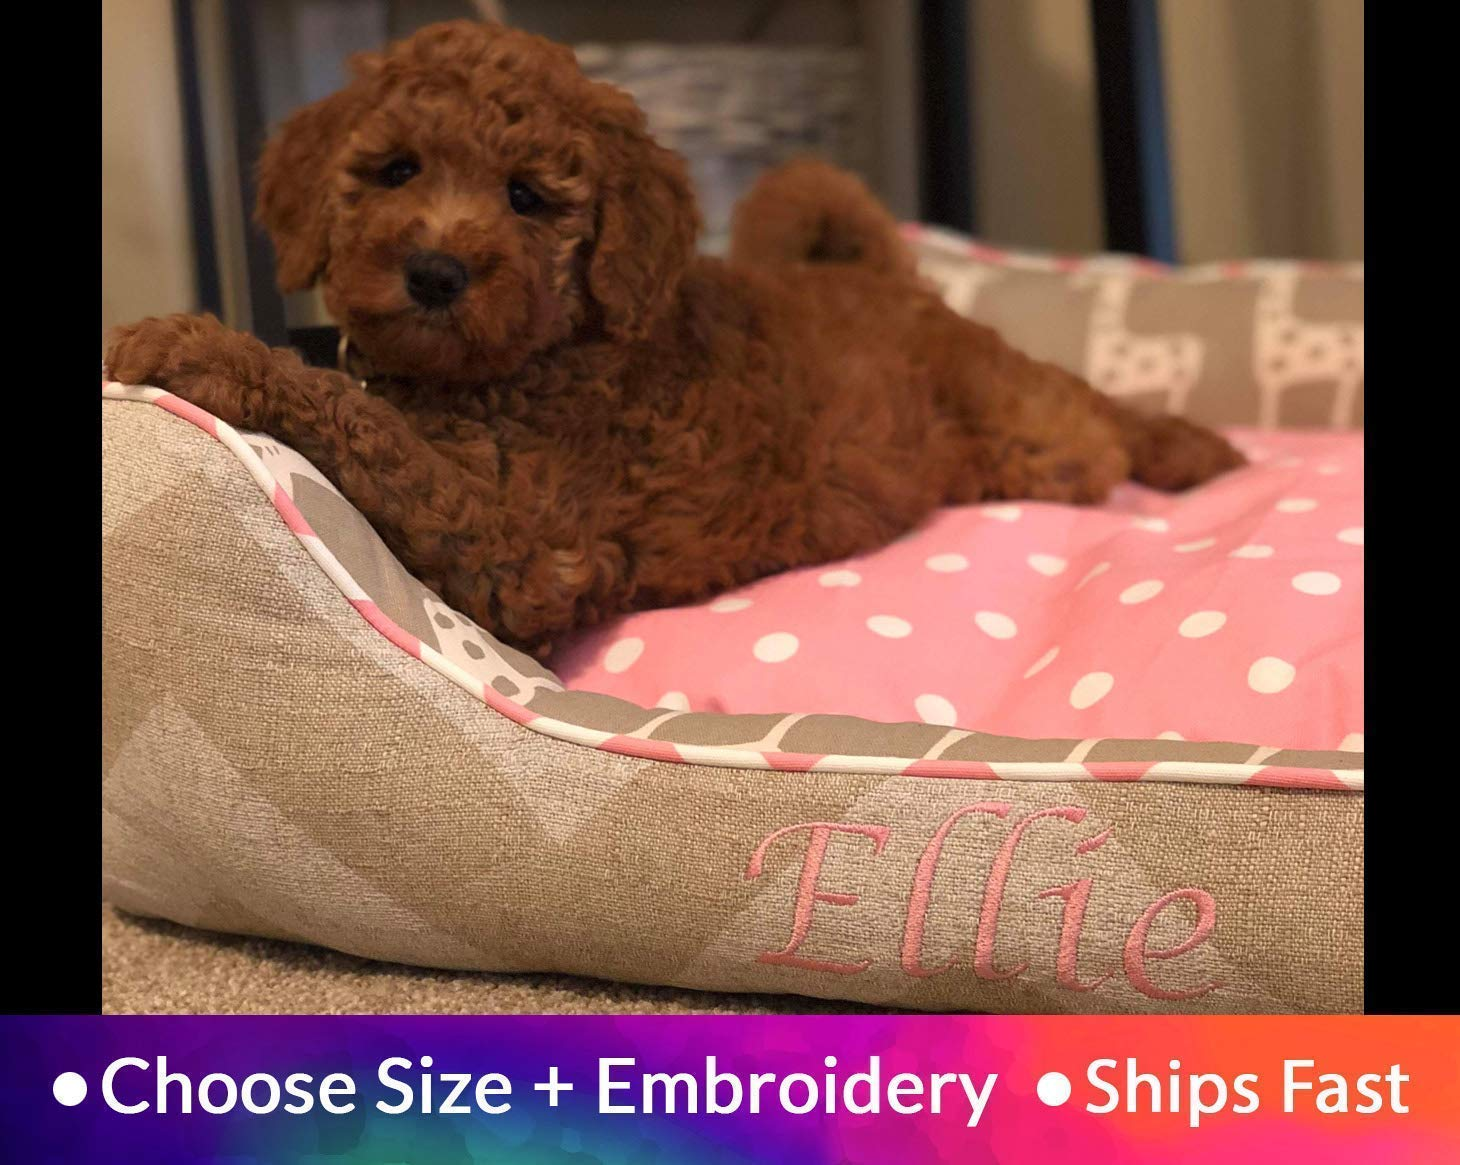 Washable Dog Bed Pink Beige | Adorable Large Dog Bed | Chevron Polka Dot Personalized